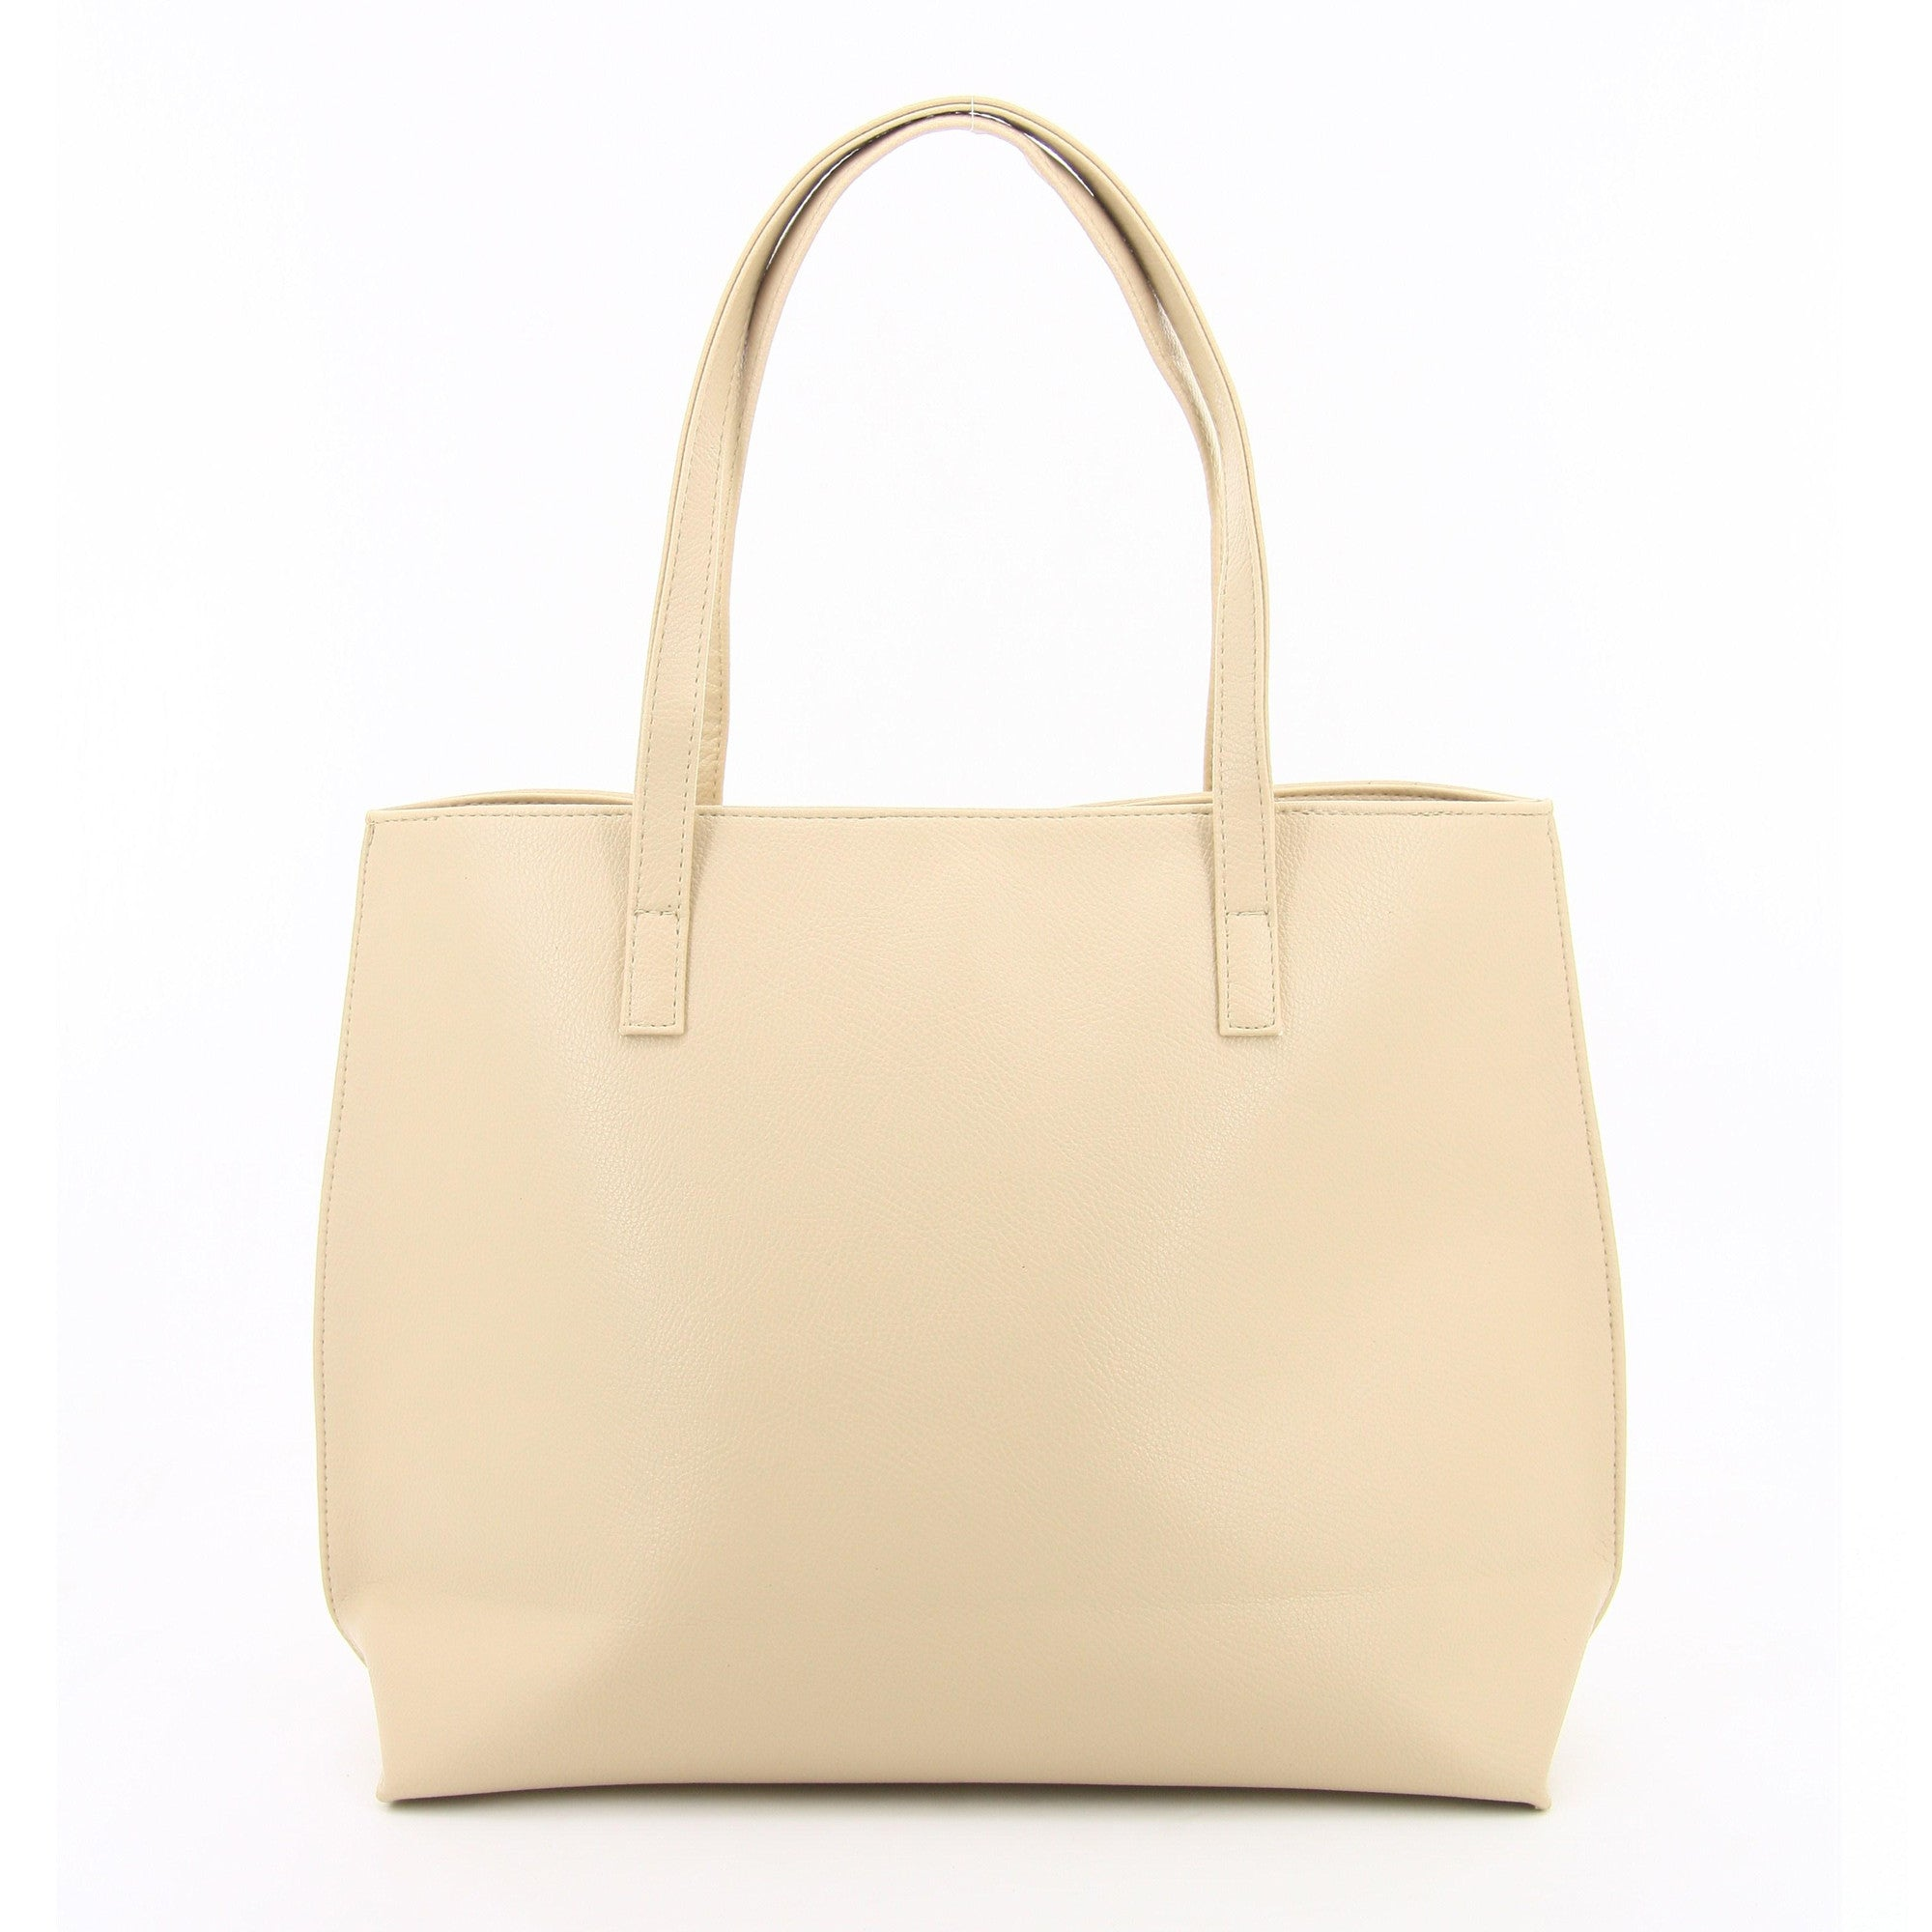 C17FE744CR 2-IN-1 TOTE BAG AND SLING (Cream)